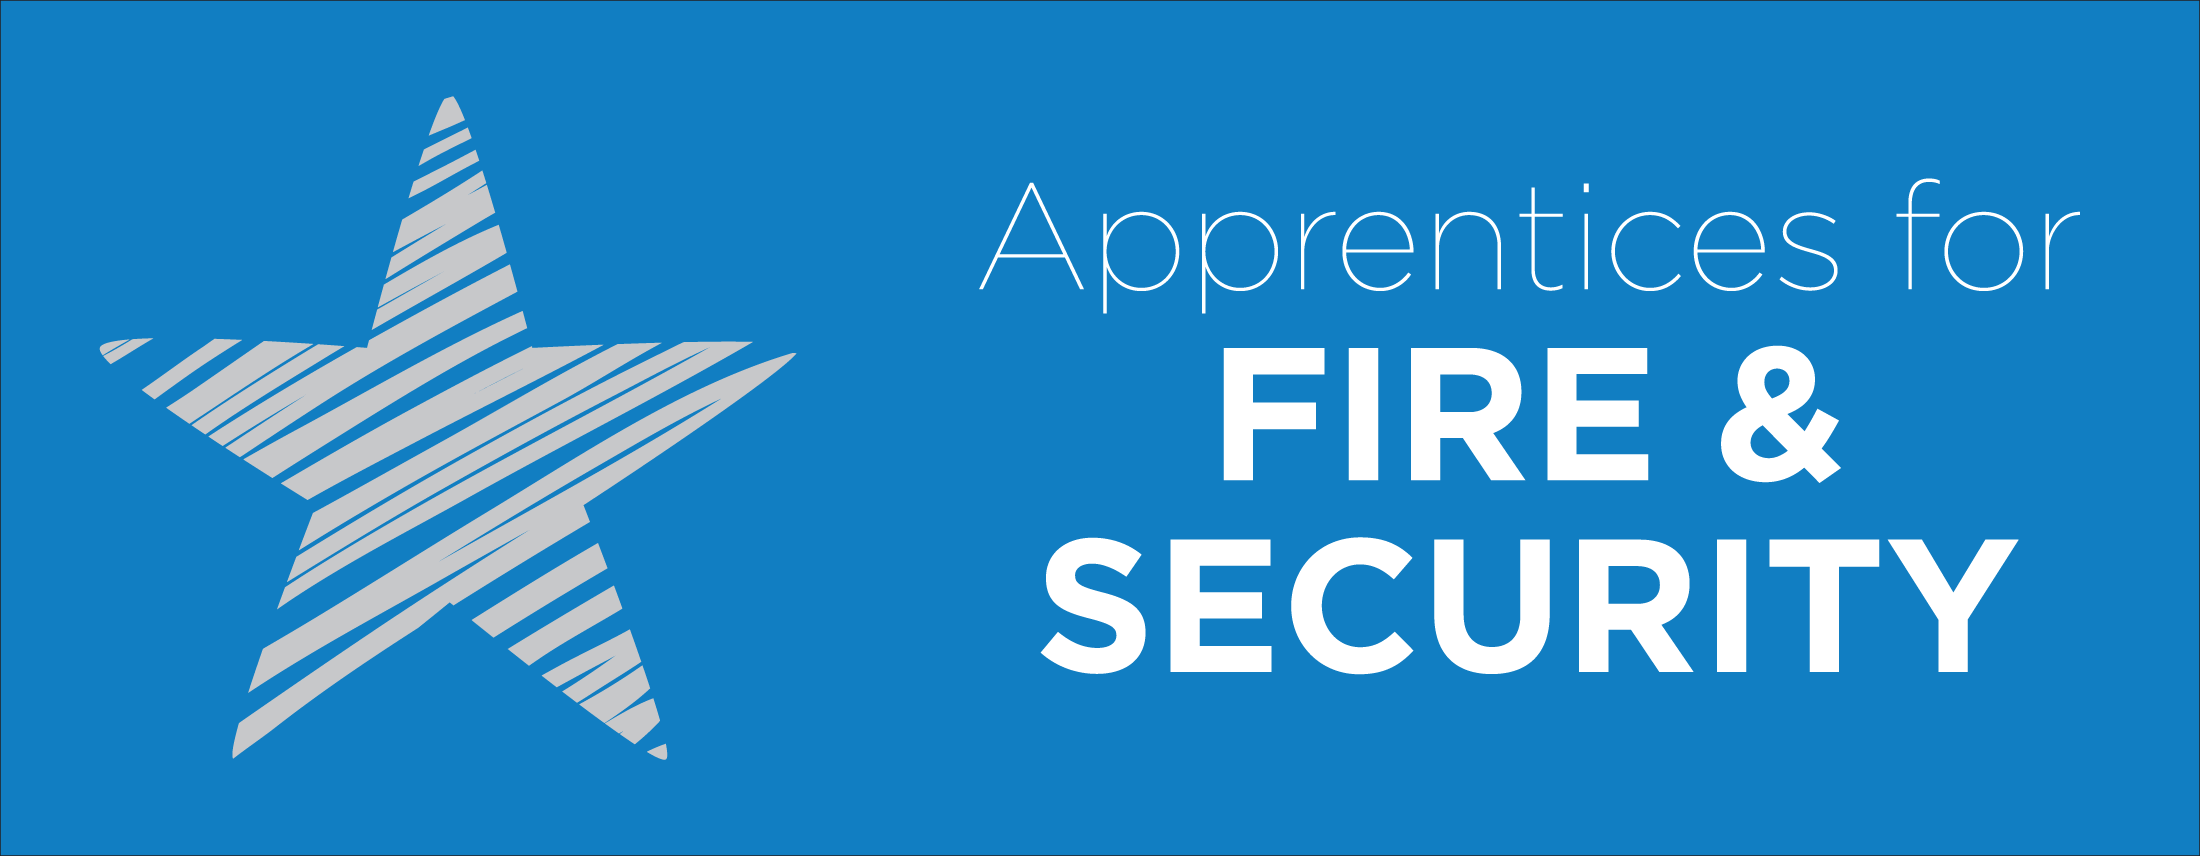 Apprentices-for-Fire-and-Security-logo